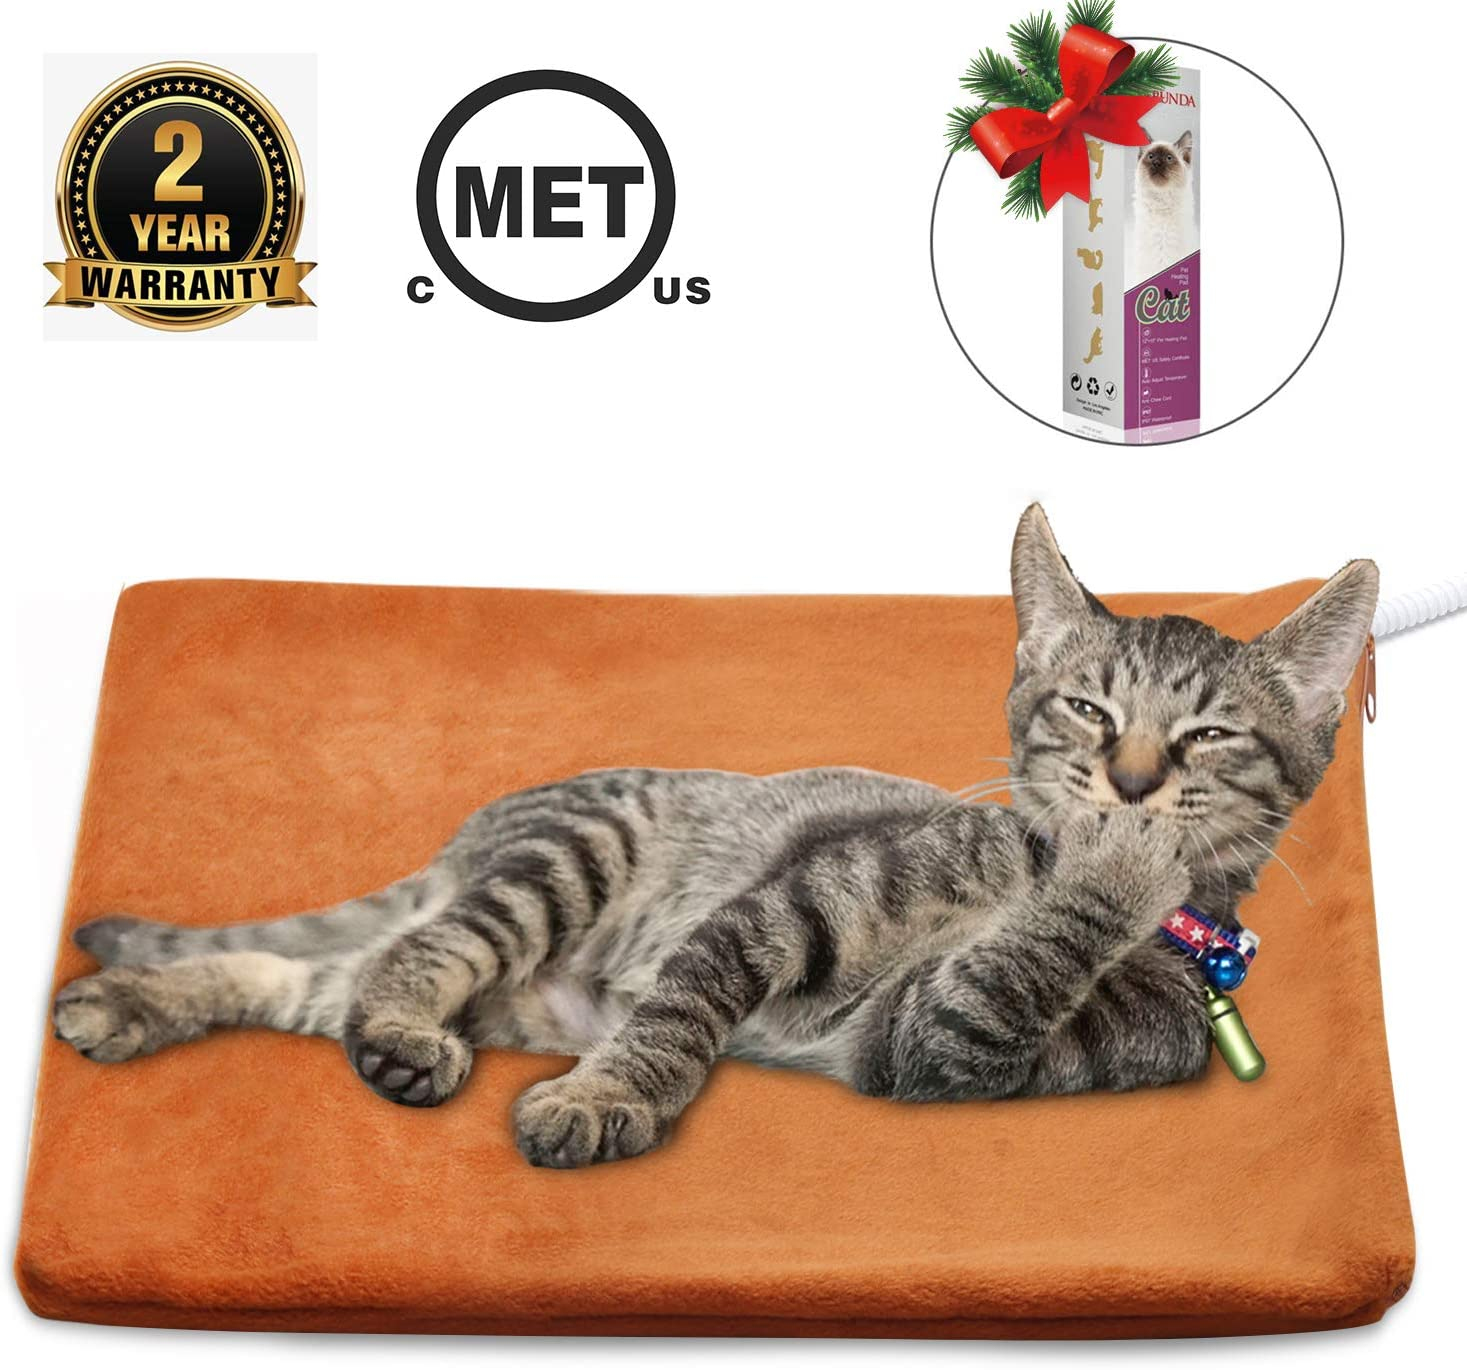 MARUNDA Pet Heating Pad,Cat Dog Electric Pet Heating Pad Indoor Waterproof,Auto Constant Temperature, Chew Resistant Steel Cord